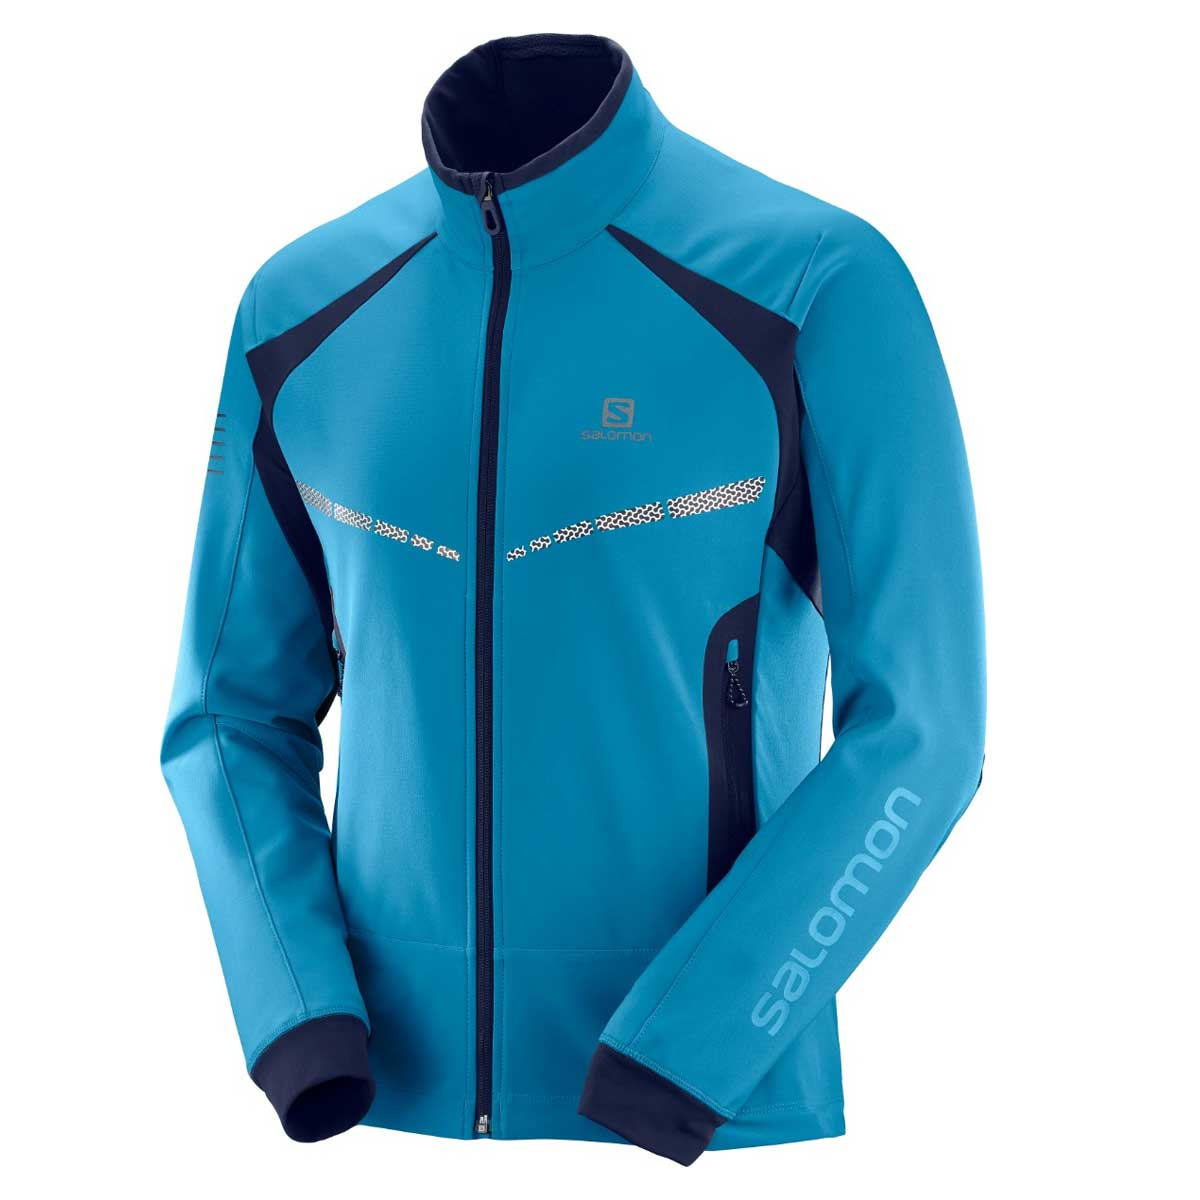 Salomon Men's RS Warm Softshell Jacket in Fjord Blue and Night Sky